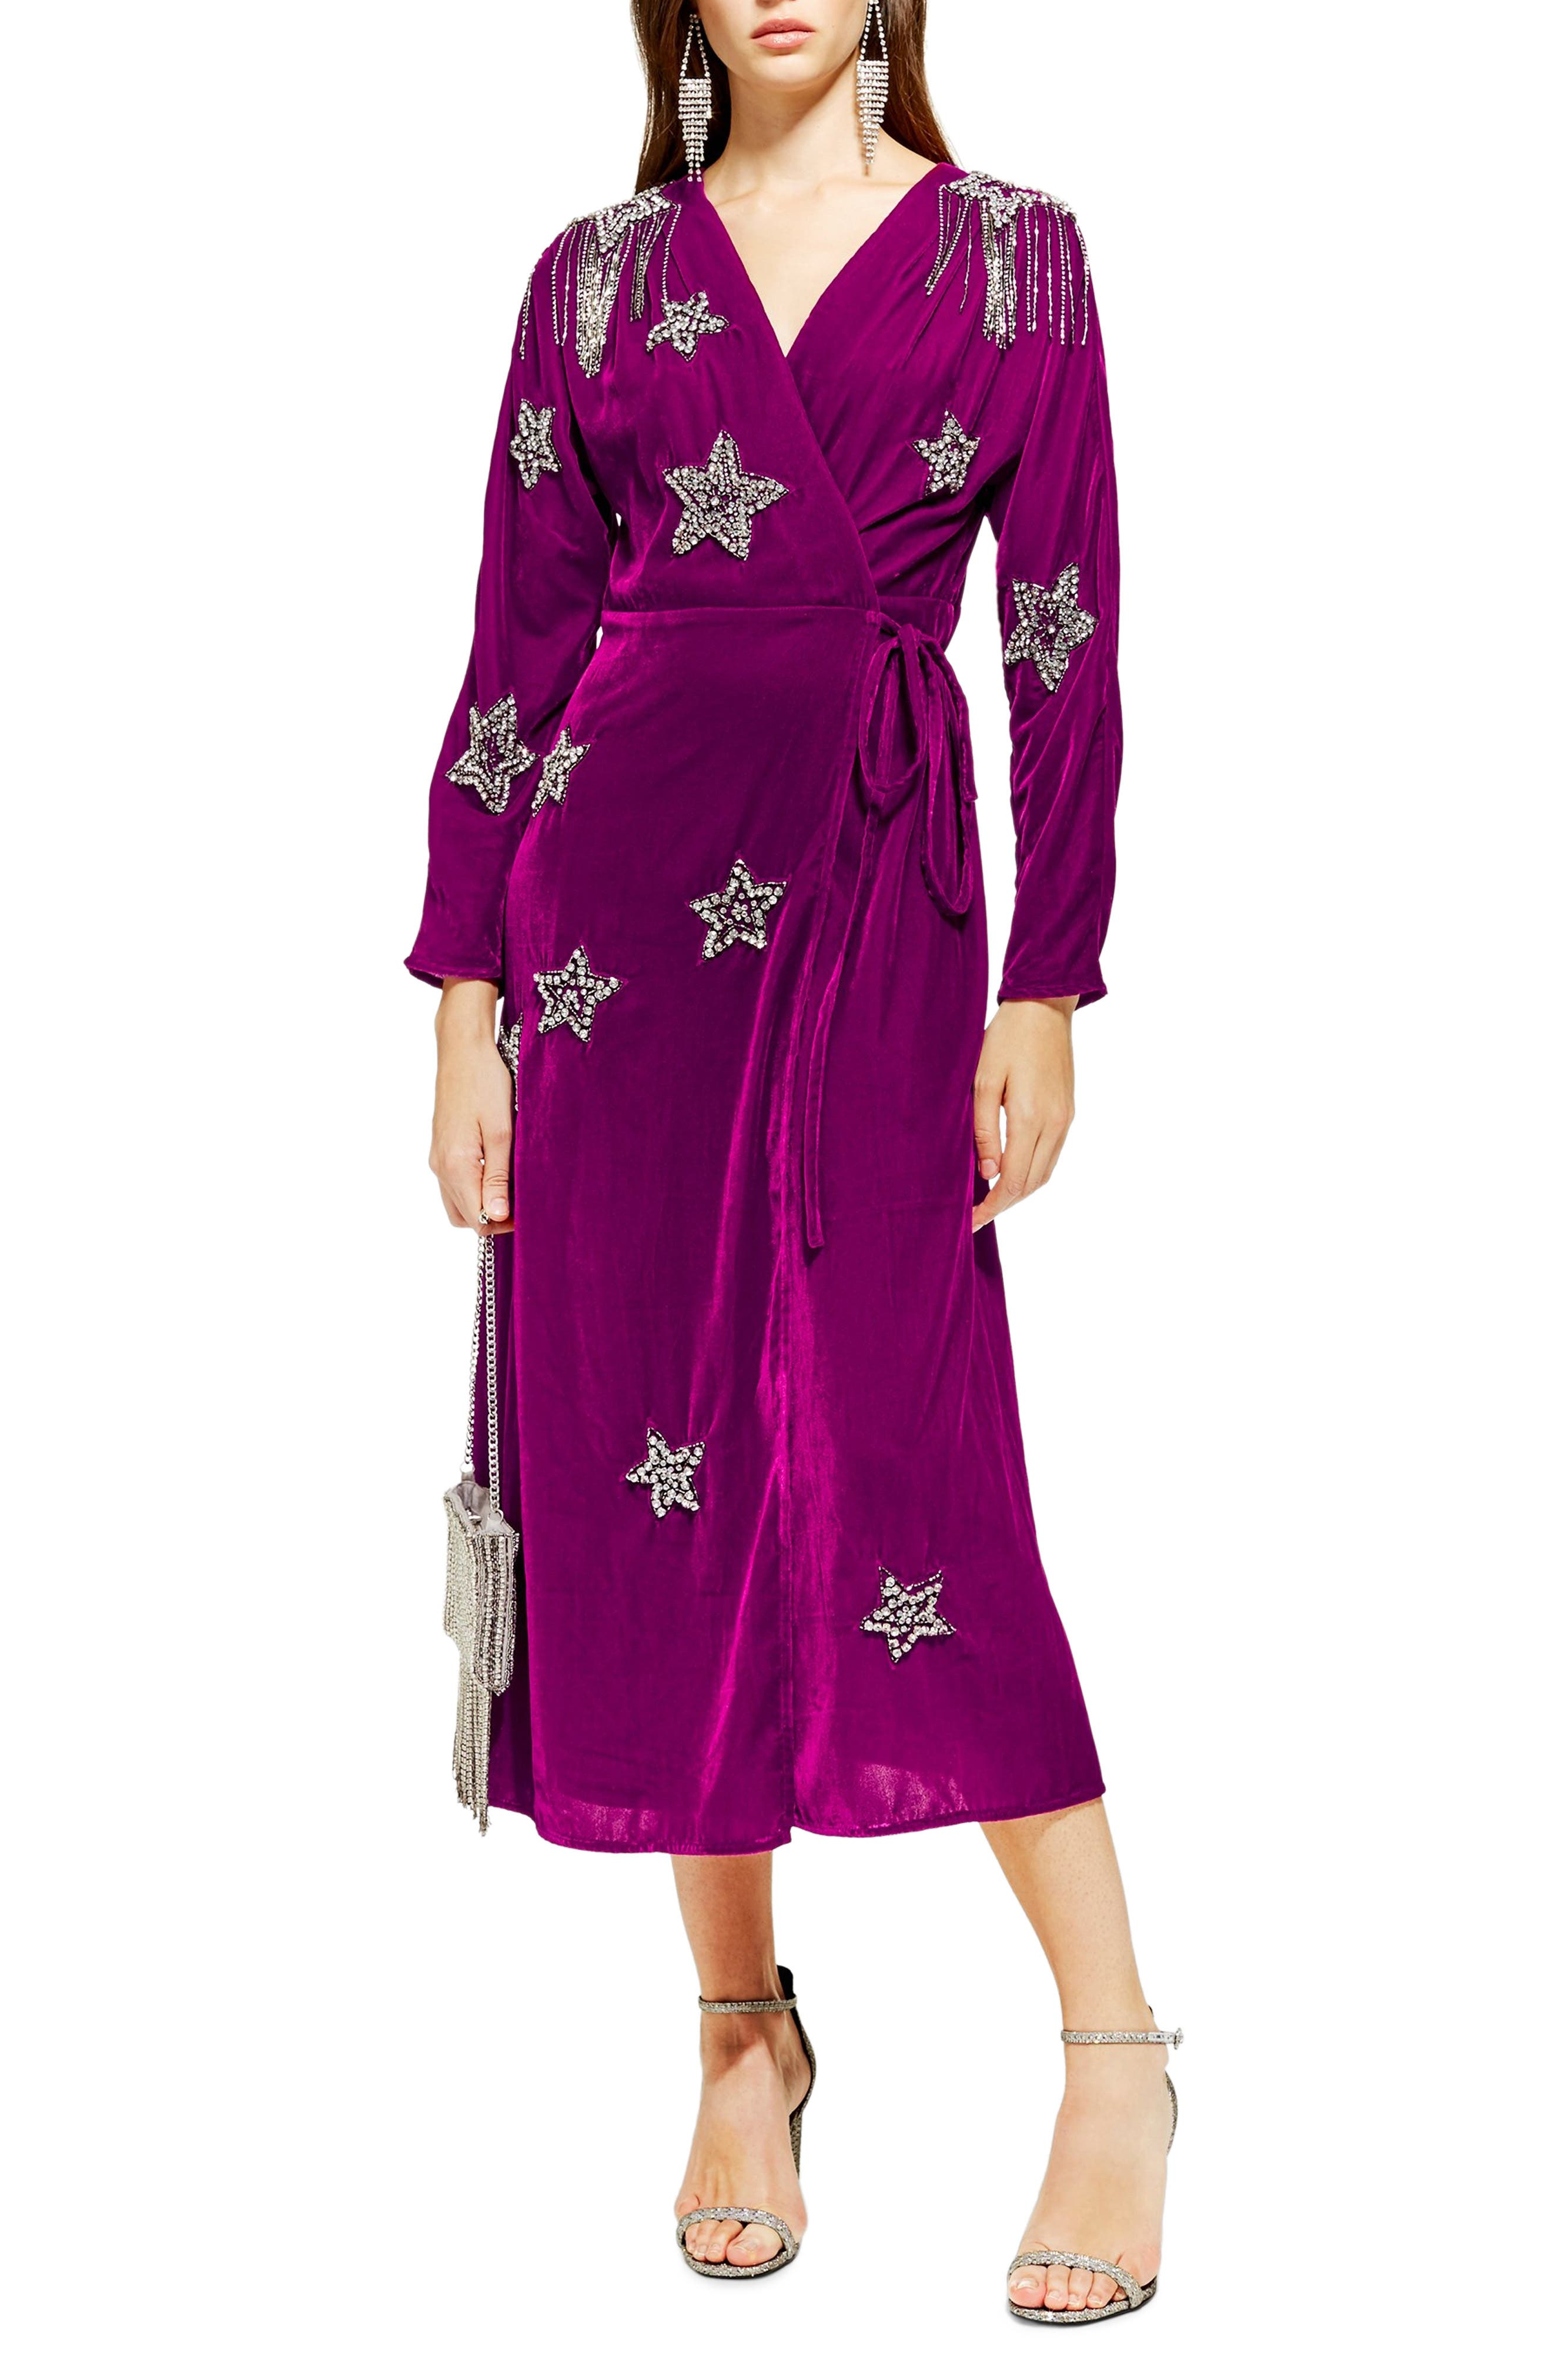 TOPSHOP,                             Velvet Embroidered Wrap Dress,                             Main thumbnail 1, color,                             540